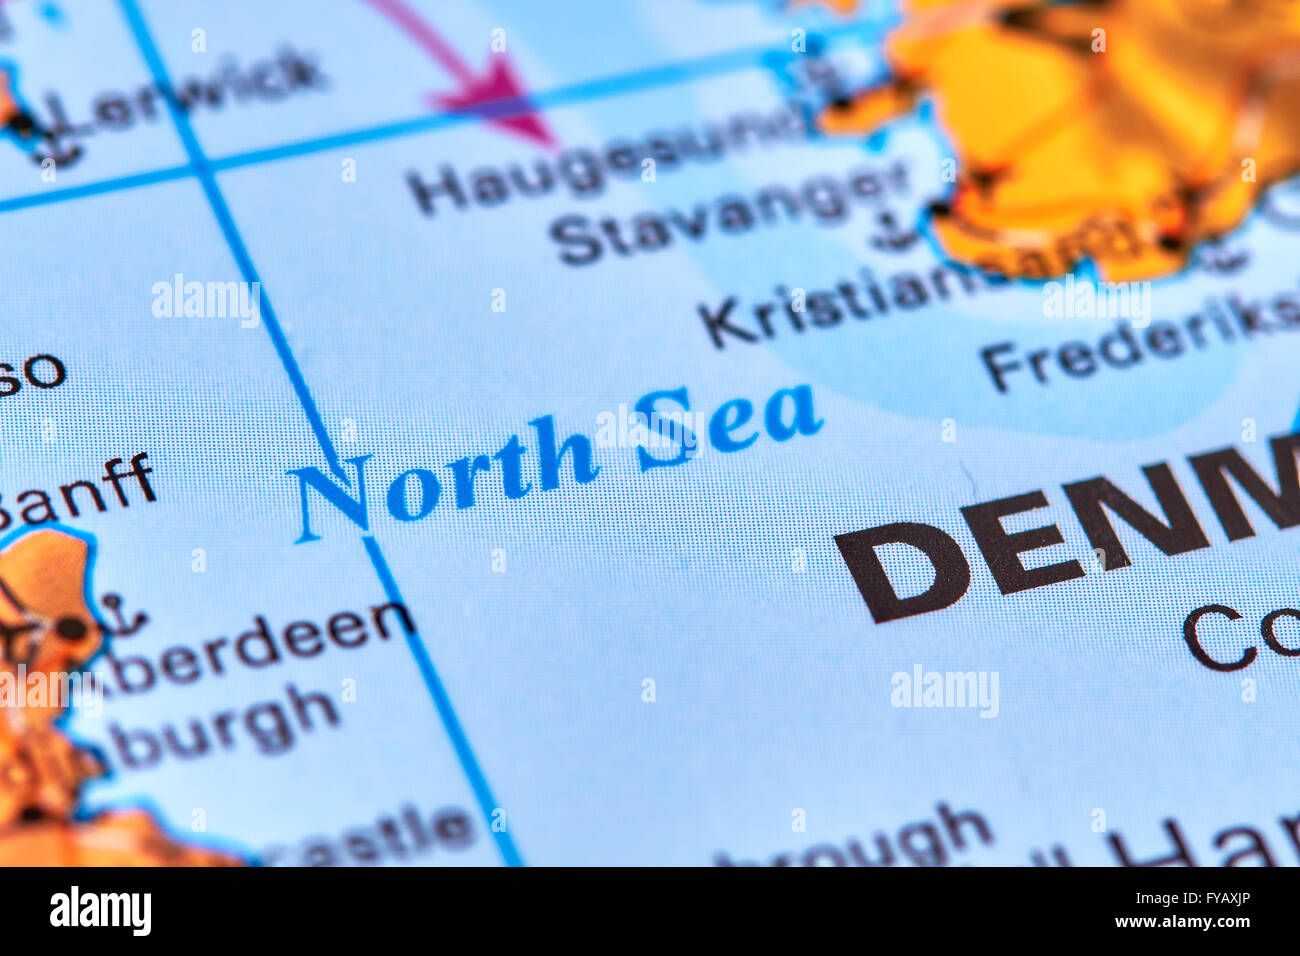 North Sea Europe Map.The North Sea Europe On The World Map Stock Photo 102887982 Alamy